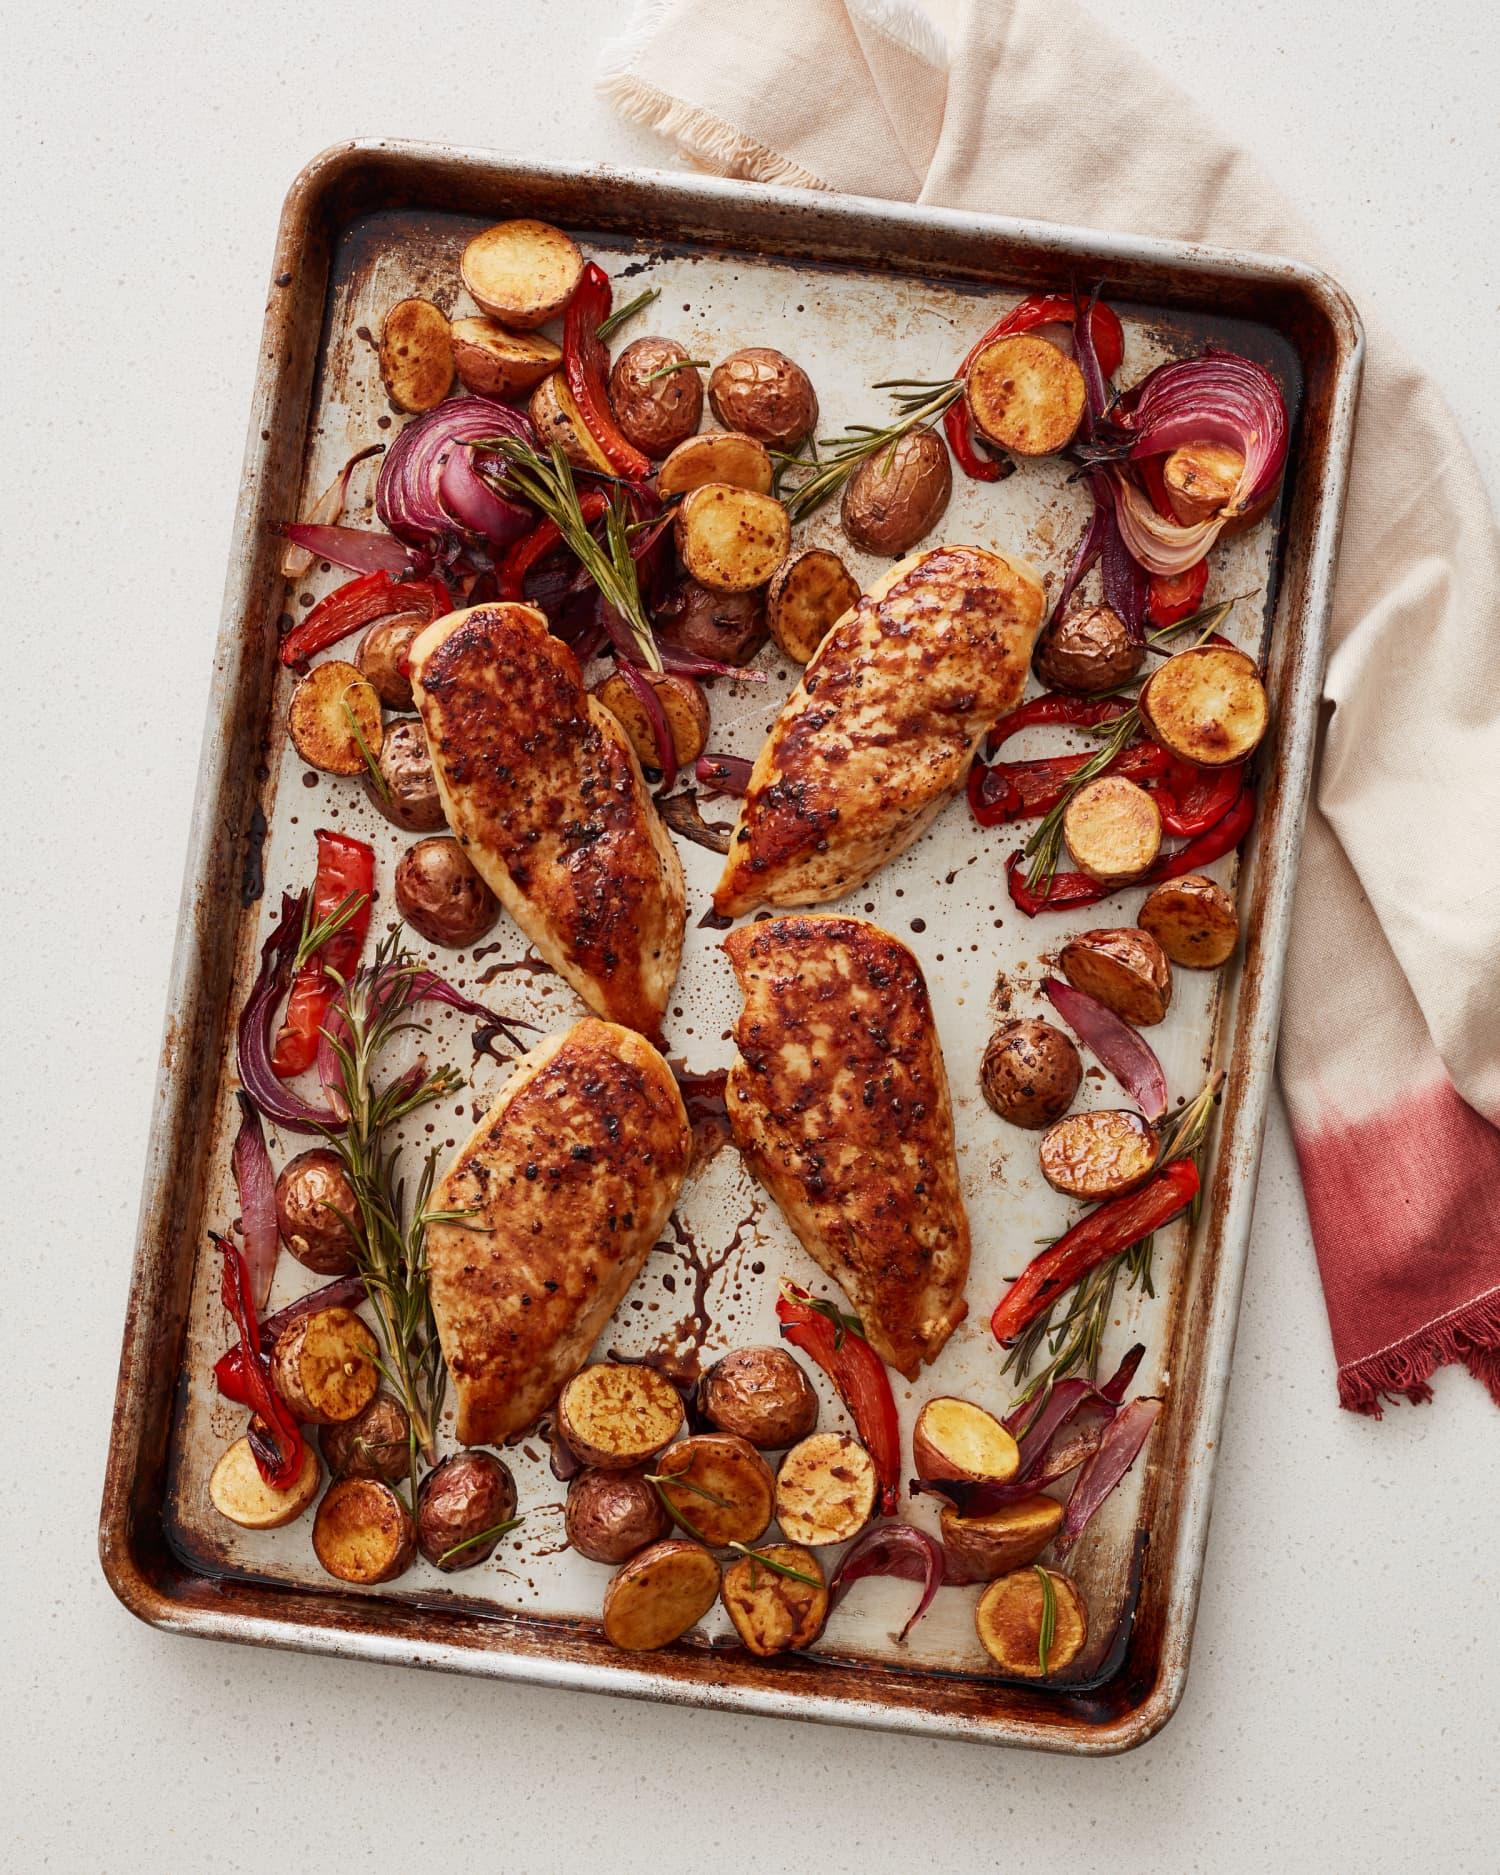 Here's How to Turn Any Dinner into a Sheet Pan Meal